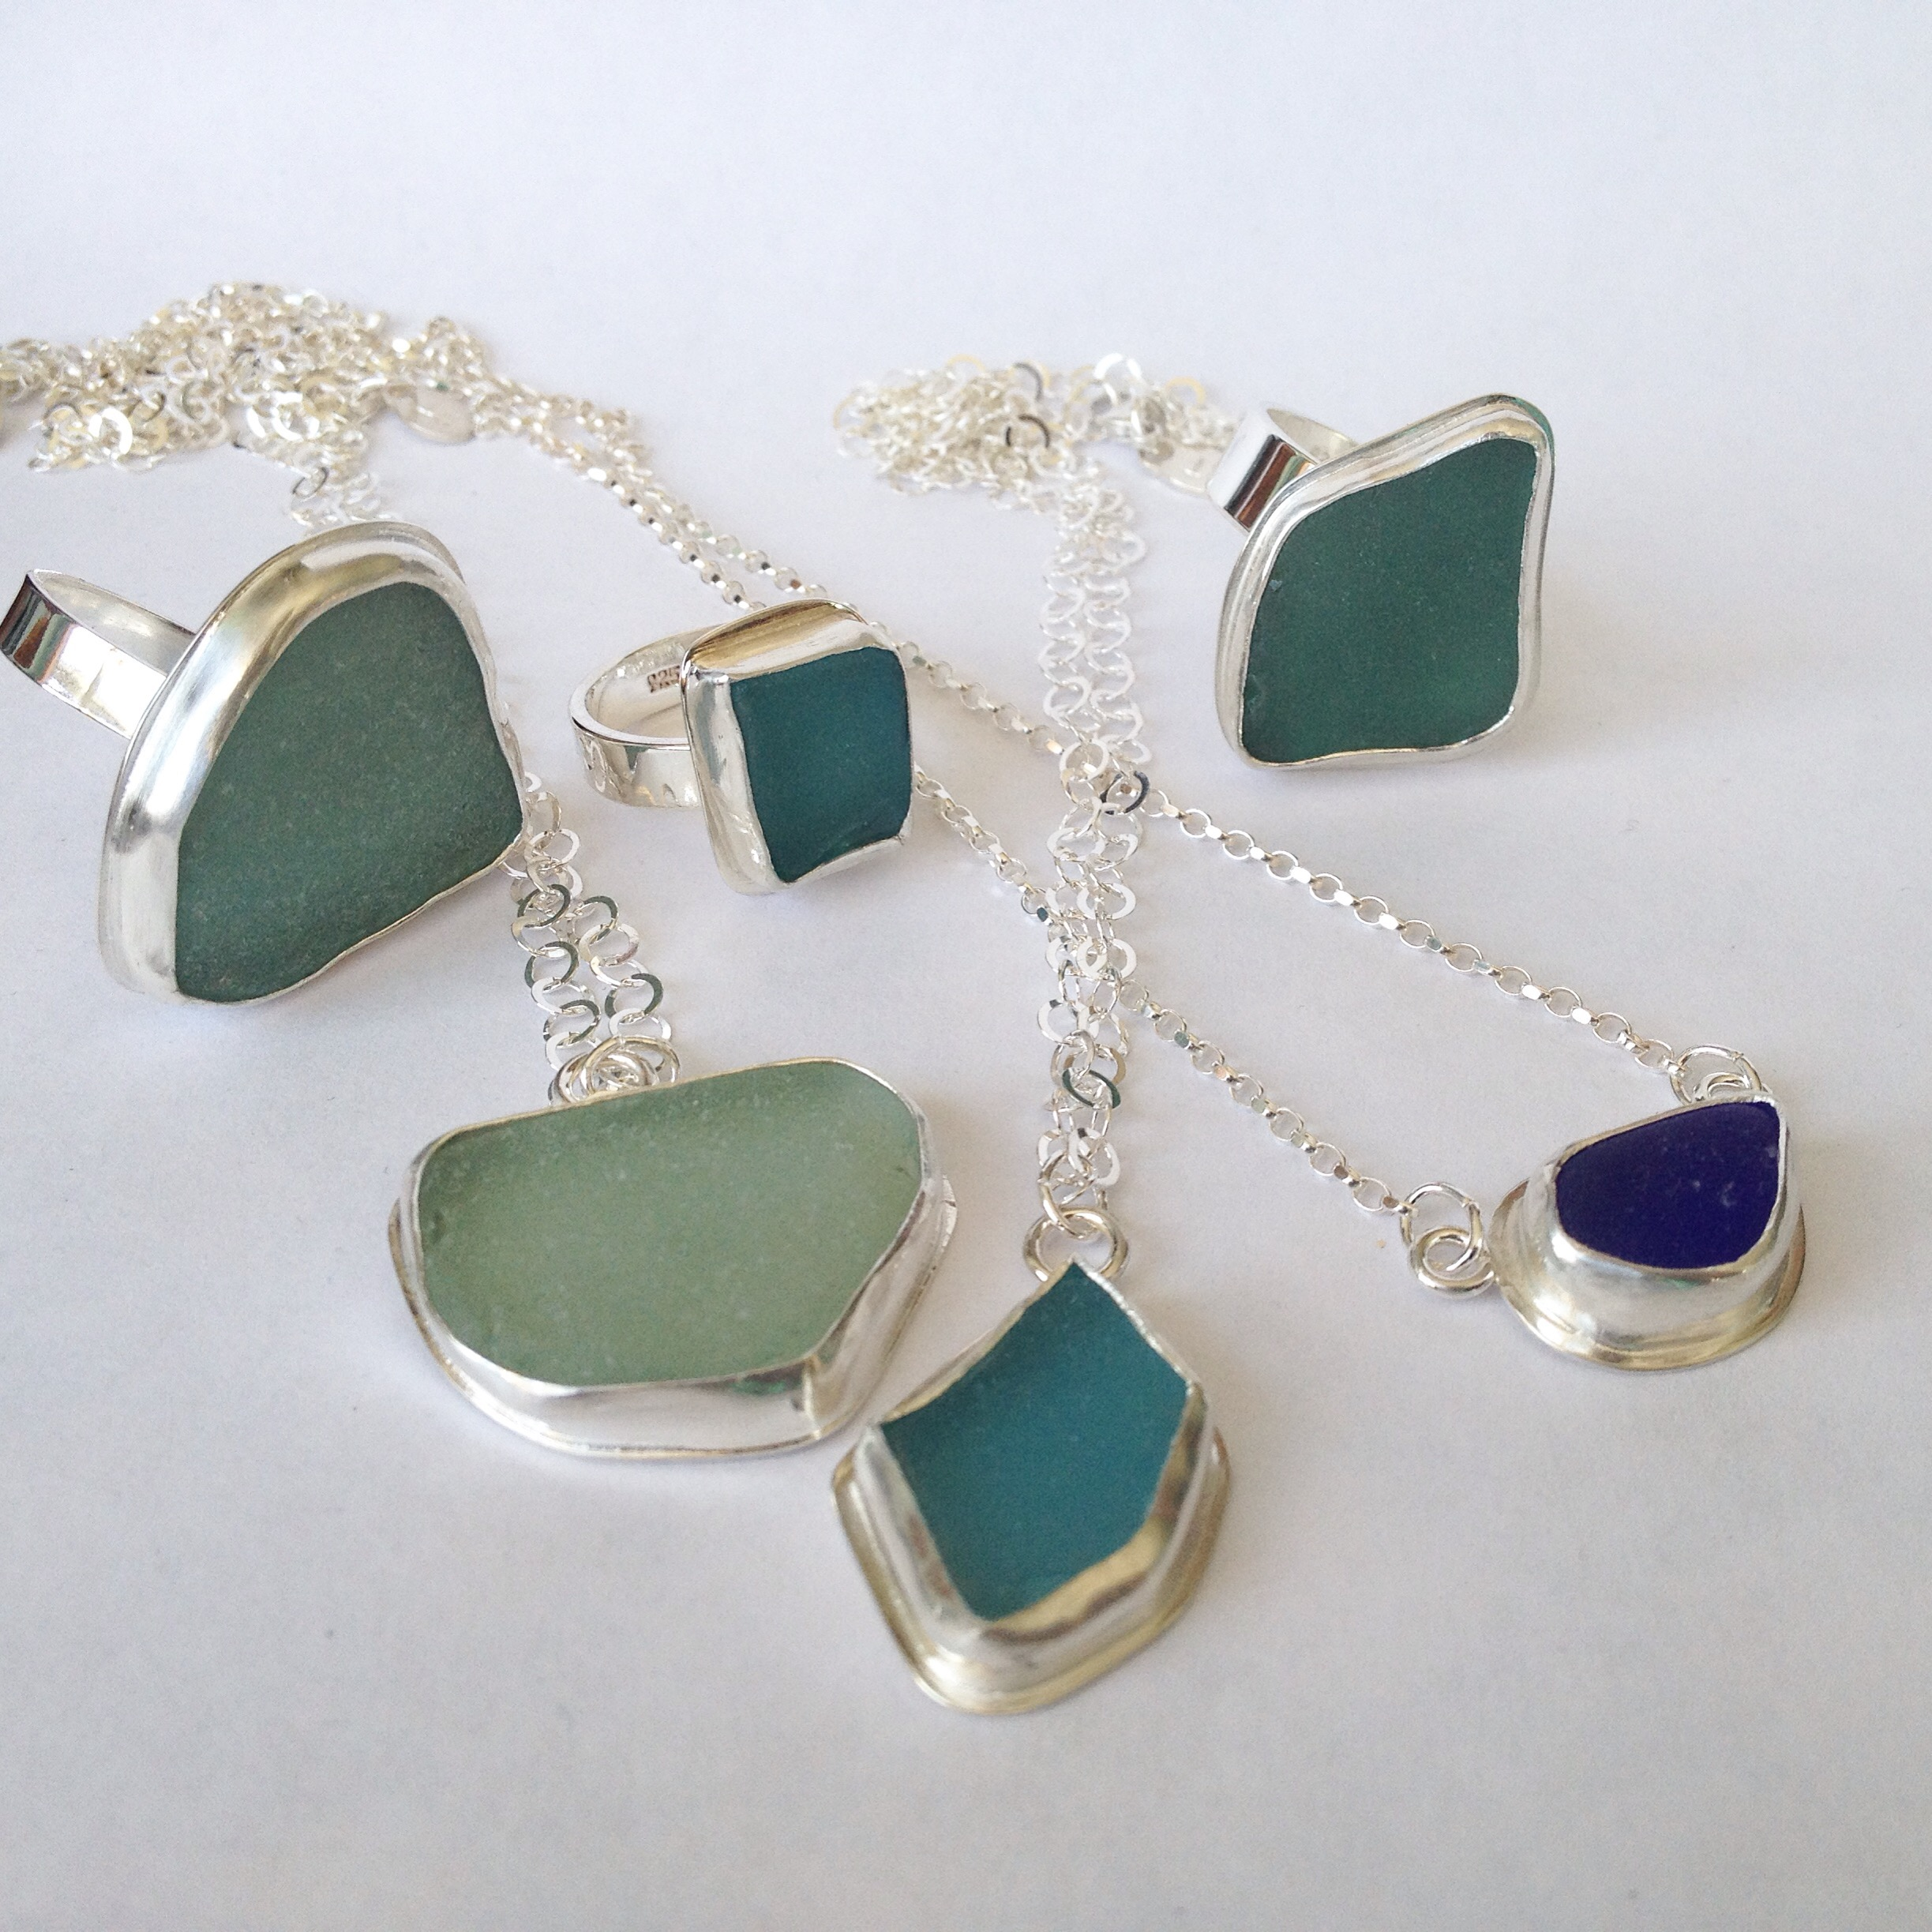 Blues and Turquoise Sea Glass Collection